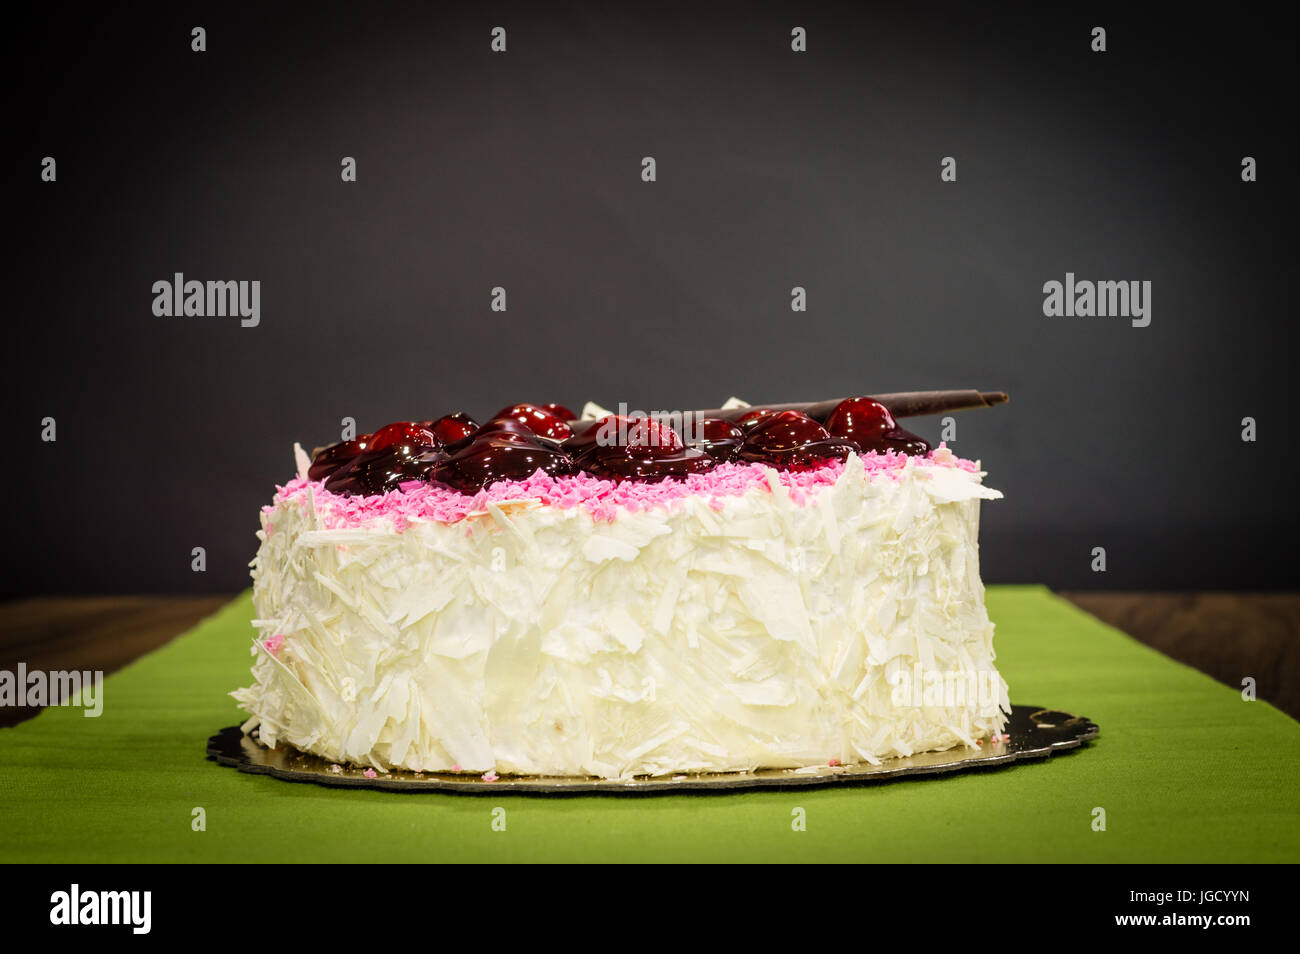 Delicious creamy whole white chocolate cake with cherries on top on a dark background Stock Photo